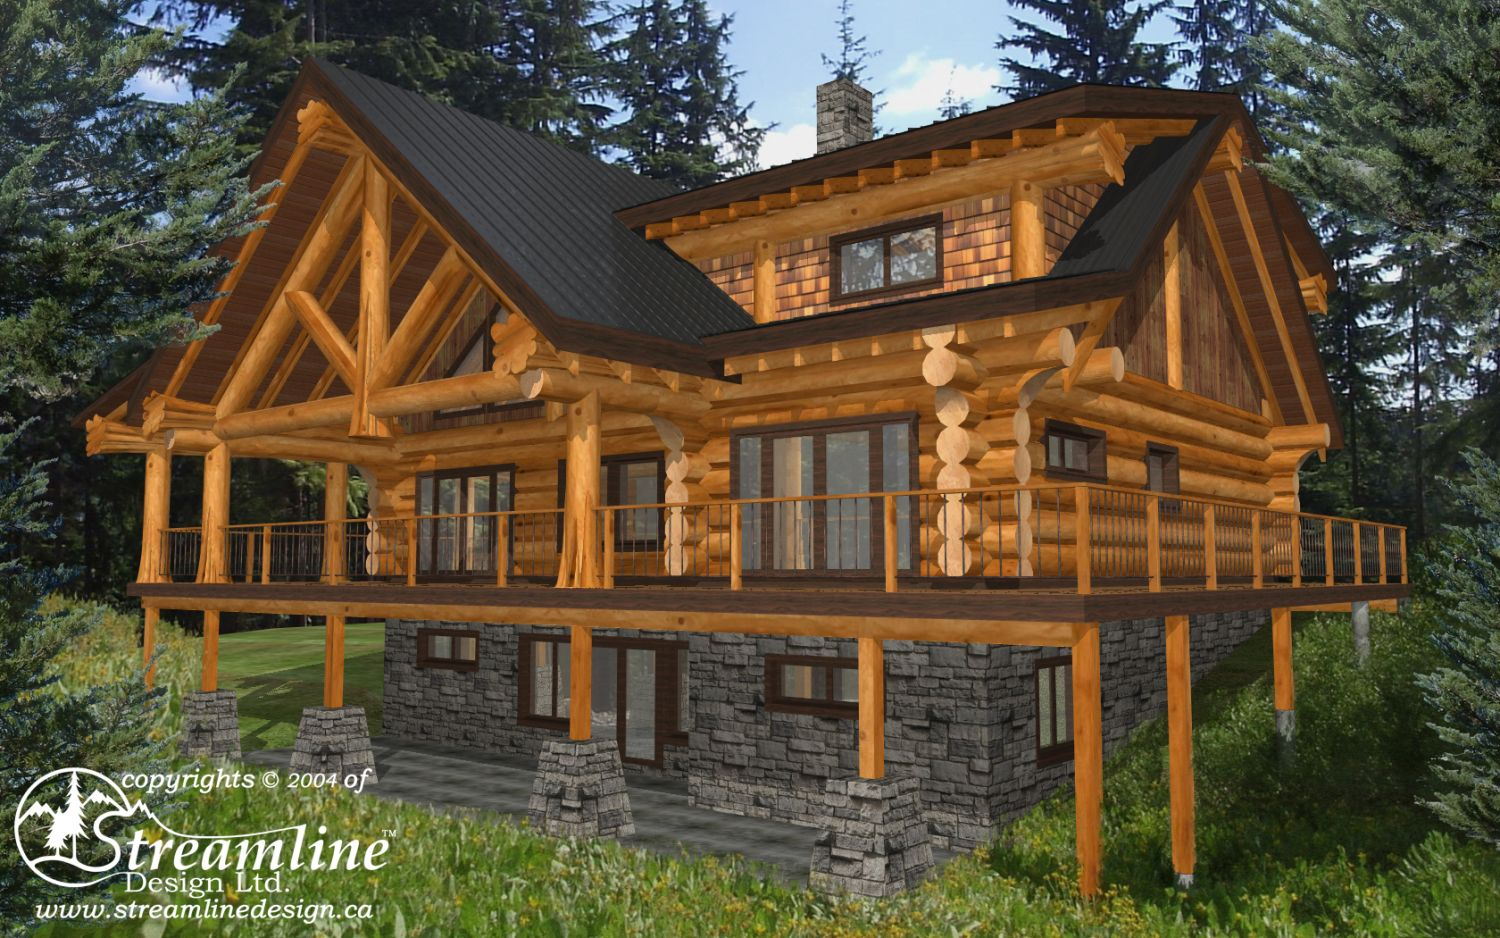 Spring 2018 Log and Timber Home Designs | Streamline Design on bouquet floral designs, modular designs, front porch with columns designs, cabin designs, log siding, view front house designs, cottage designs, log dream homes, stilt house designs, log countertop ideas, dutch designs, farmhouse designs, log modular homes, log art, log fence design, kitchen designs, log building, farm designs, log furniture, bungalow designs,